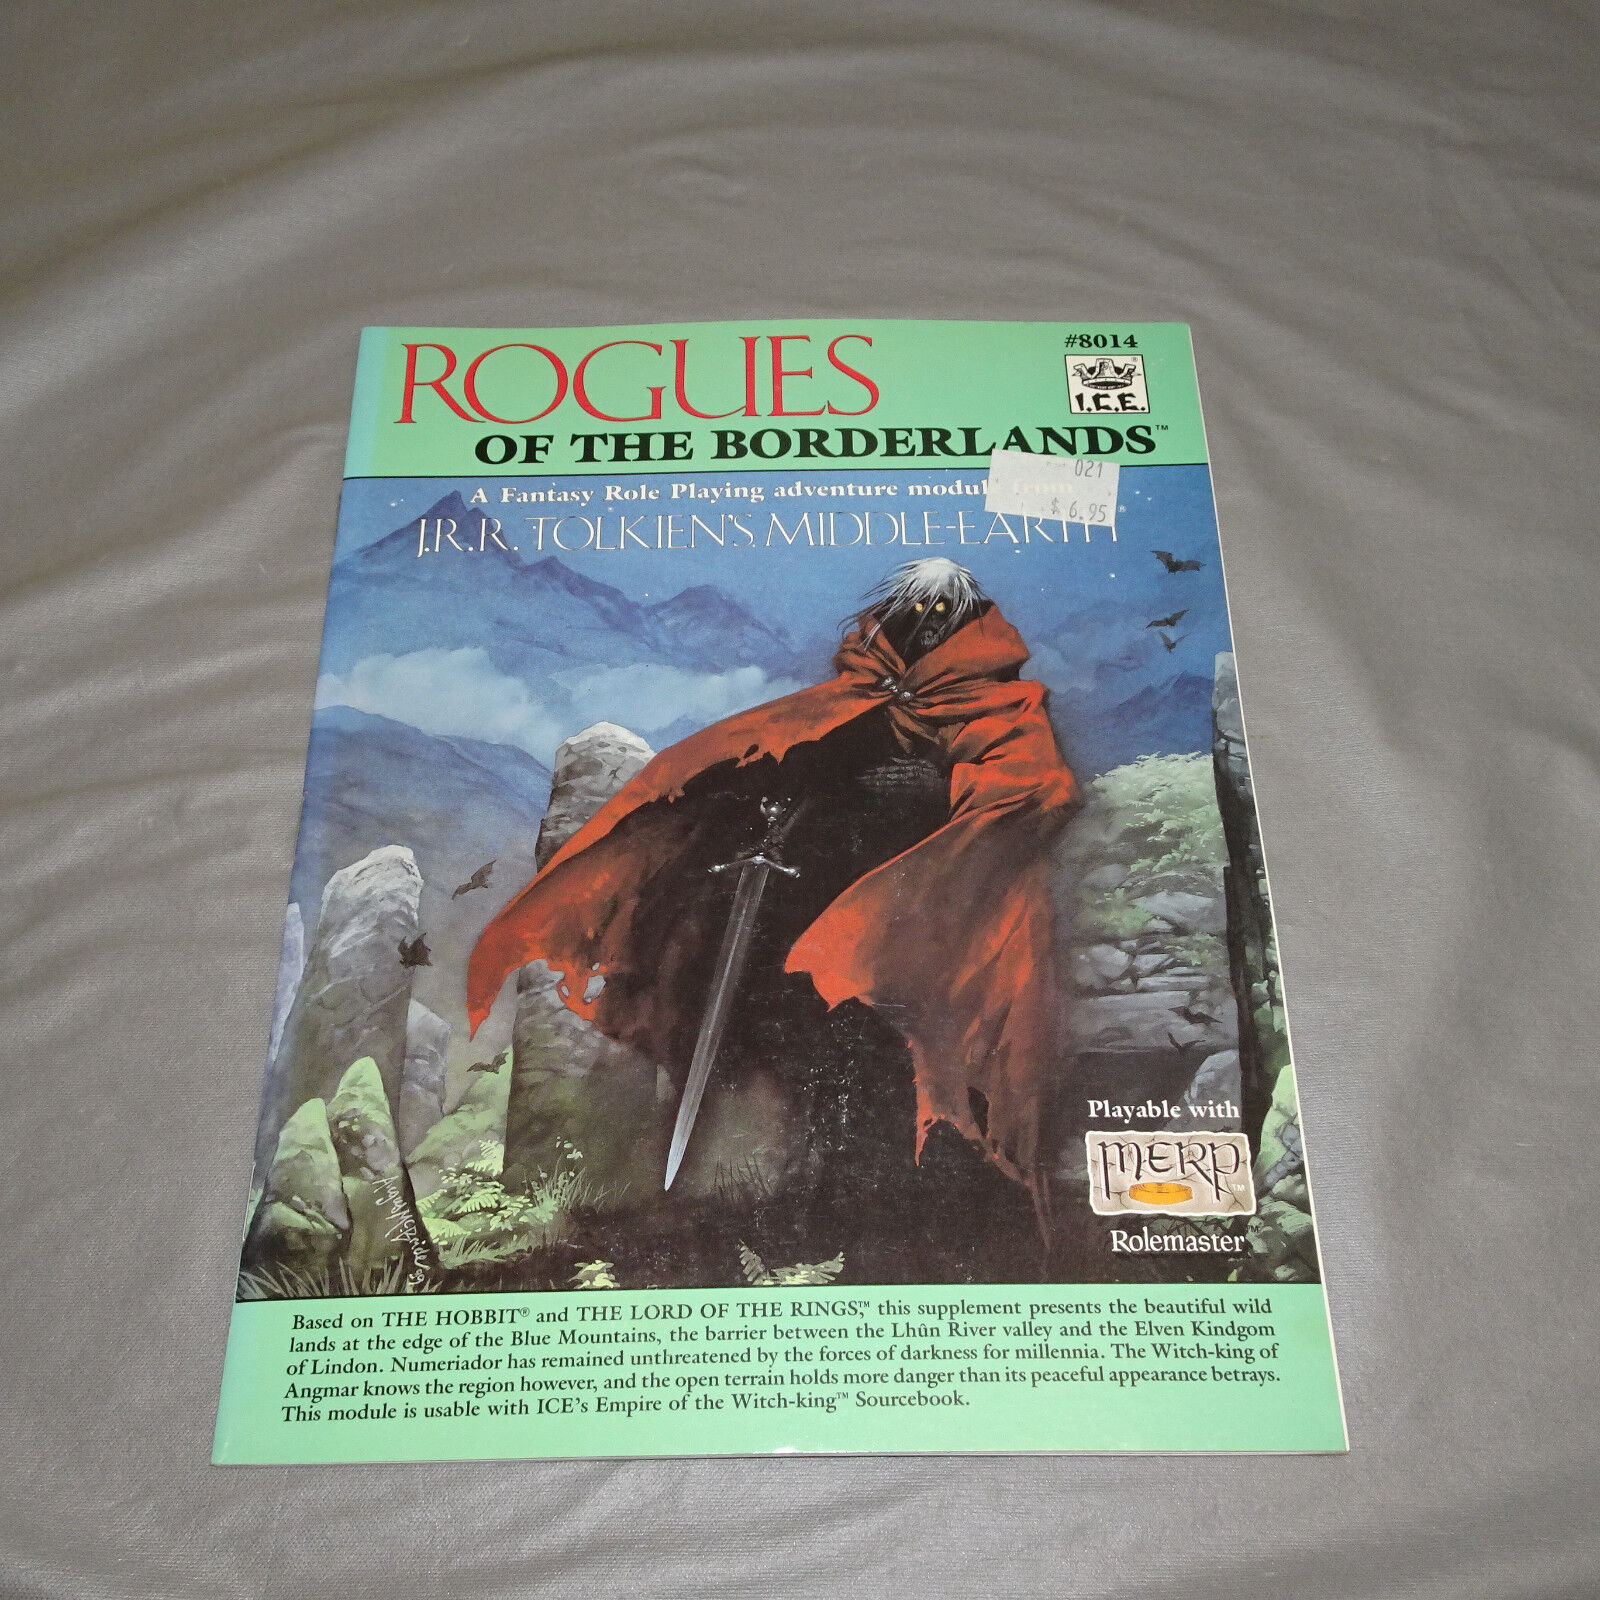 vendita online risparmia il 70% ROGUES OF THE BORDERLeS  MIDDLE-EARTH  8014  I.C.E. I.C.E. I.C.E. merp - 1990  solo per te